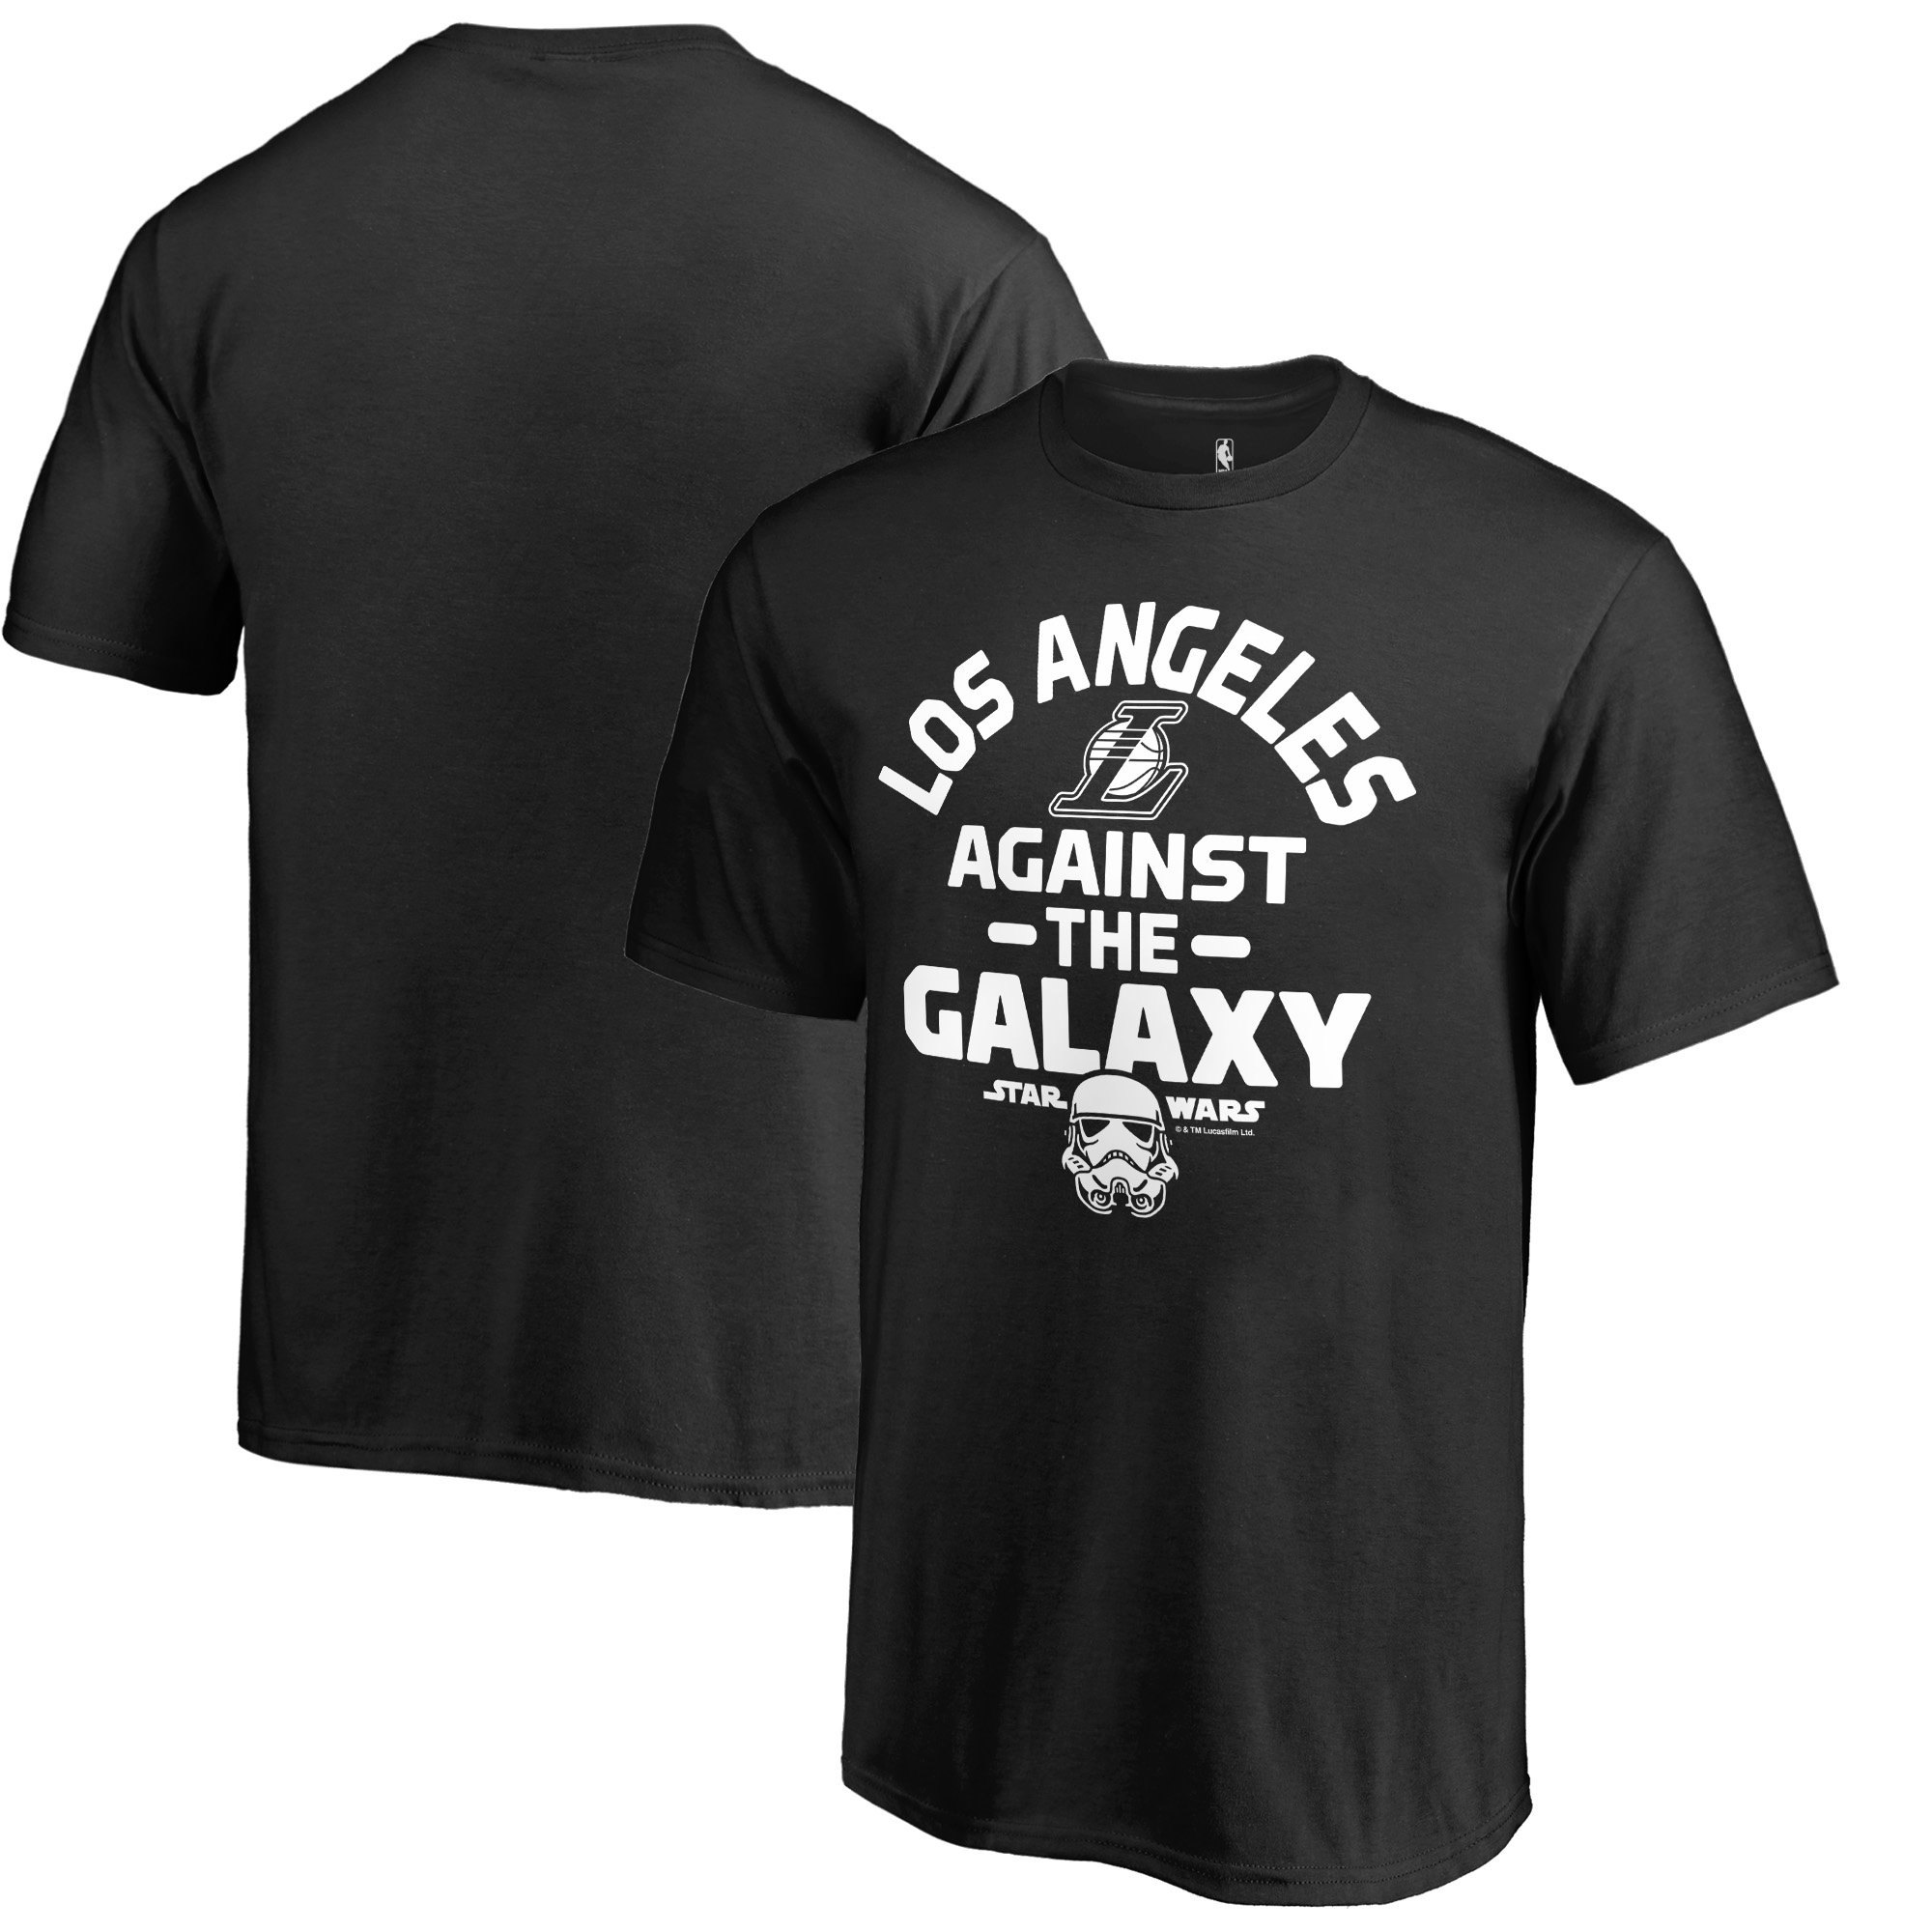 Los Angeles Lakers Fanatics Branded Youth Star Wars Against the Galaxy T-Shirt - Black